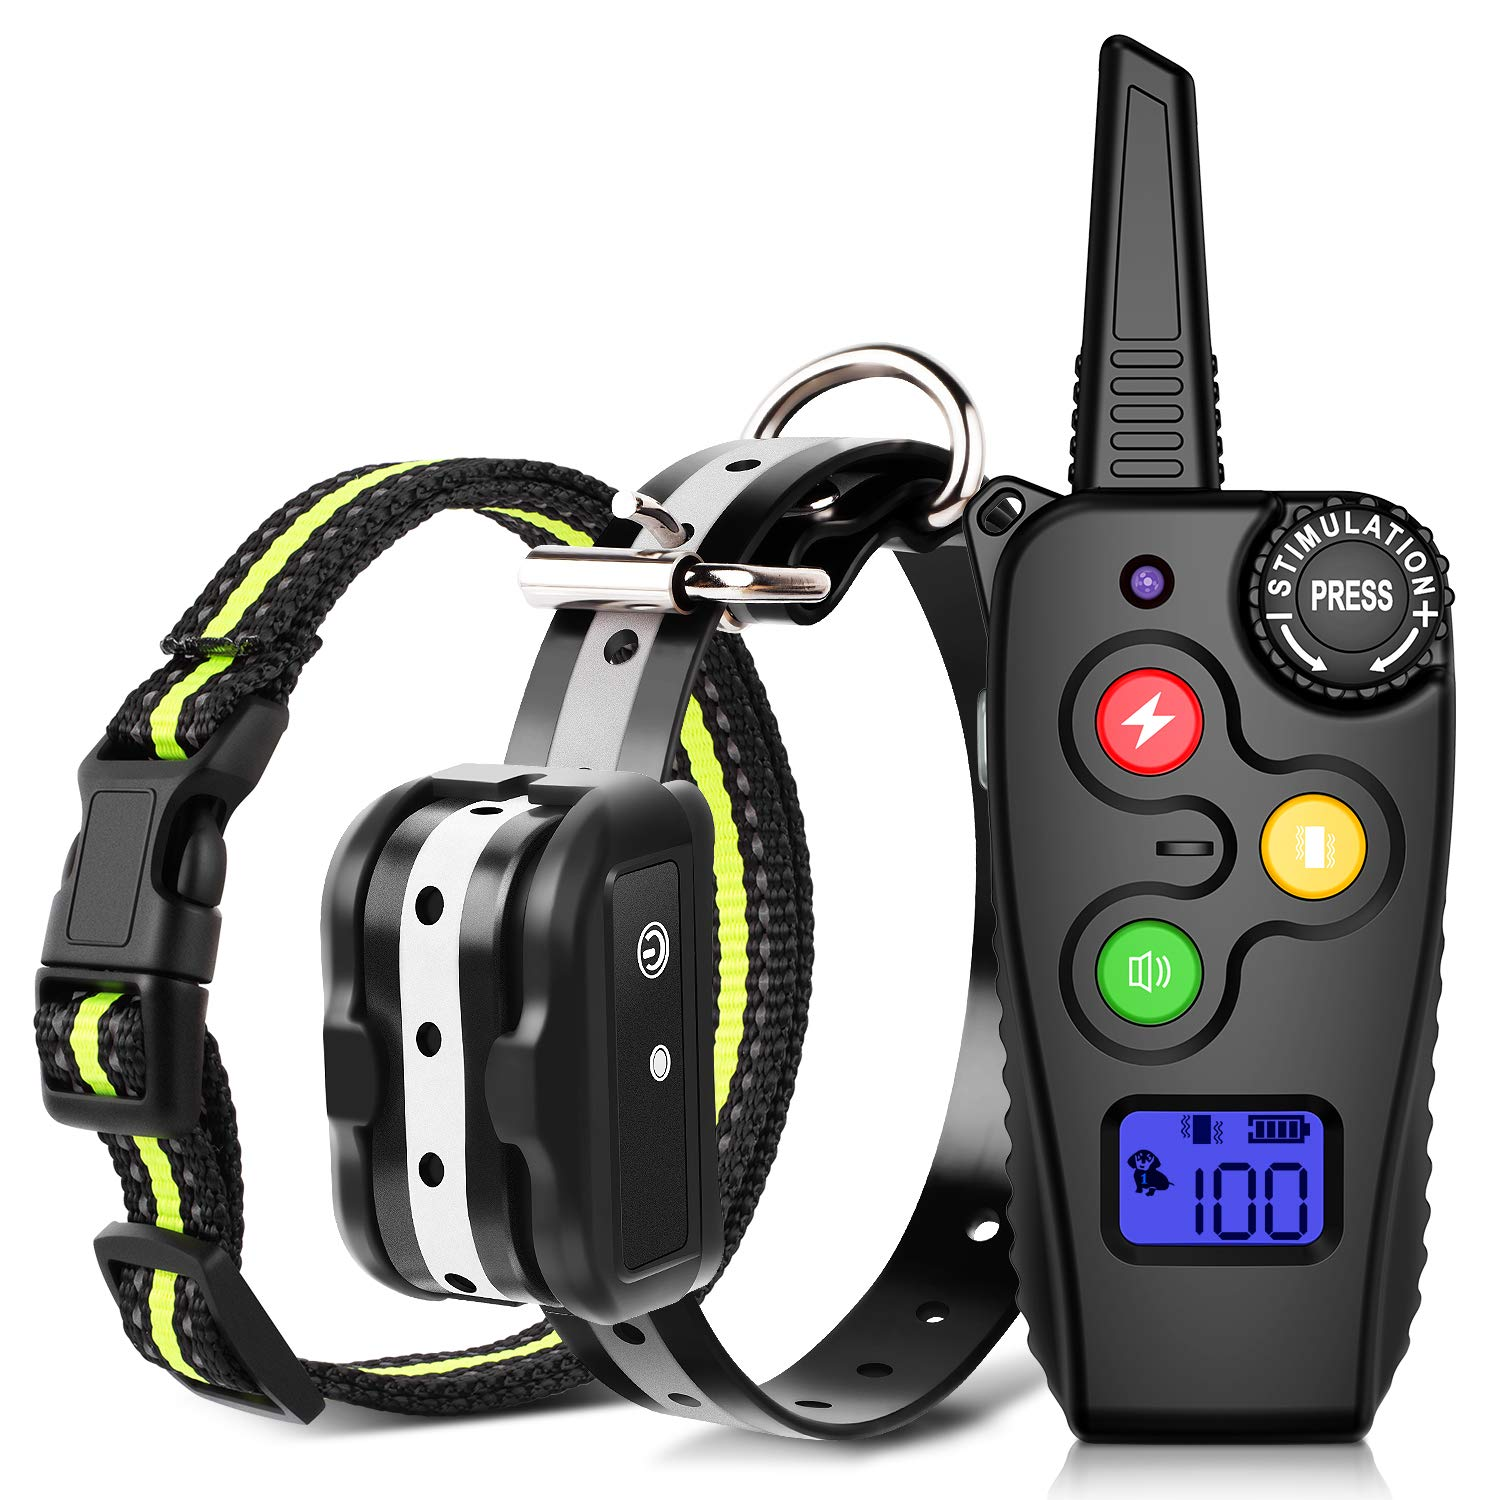 Ankace Shock Collar for Dogs with Remote Dog Training Collar Rechargeable No Bark Collar with Shock Modes Remote Collar Waterproof Shock Collar for Small Medium large dog by Ankace